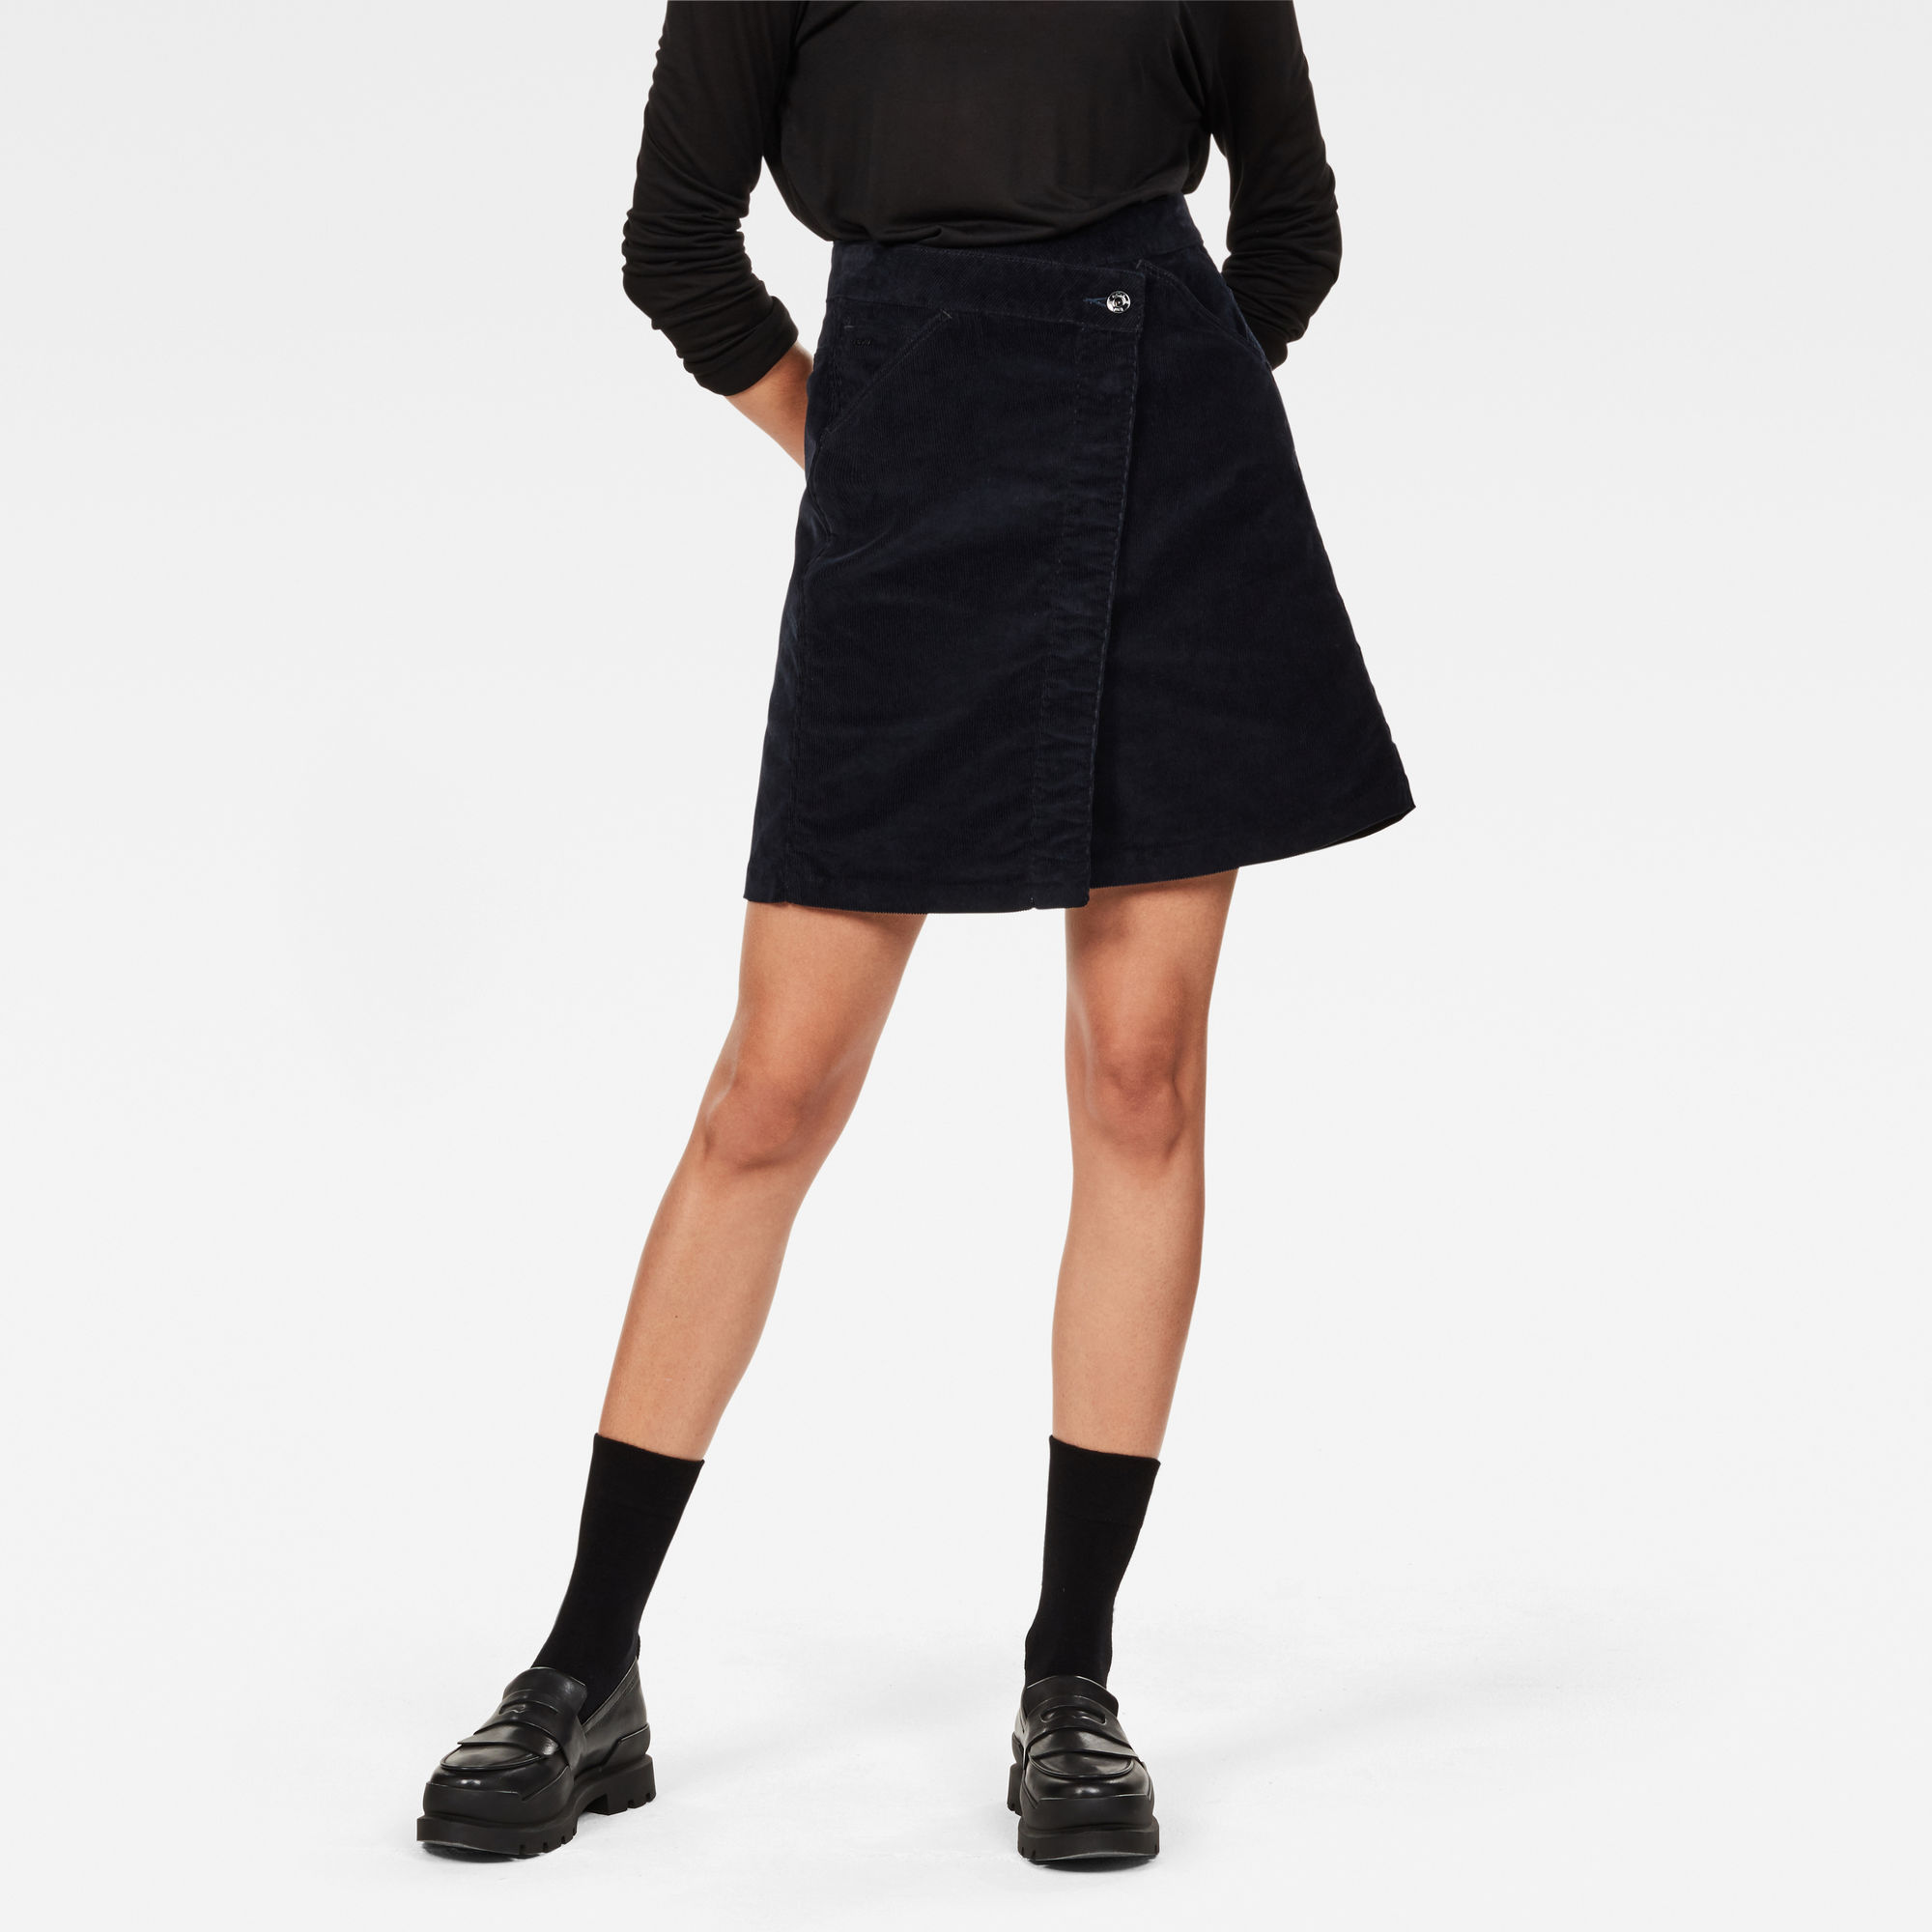 Image of G Star Raw 5621 Wrap Skirt